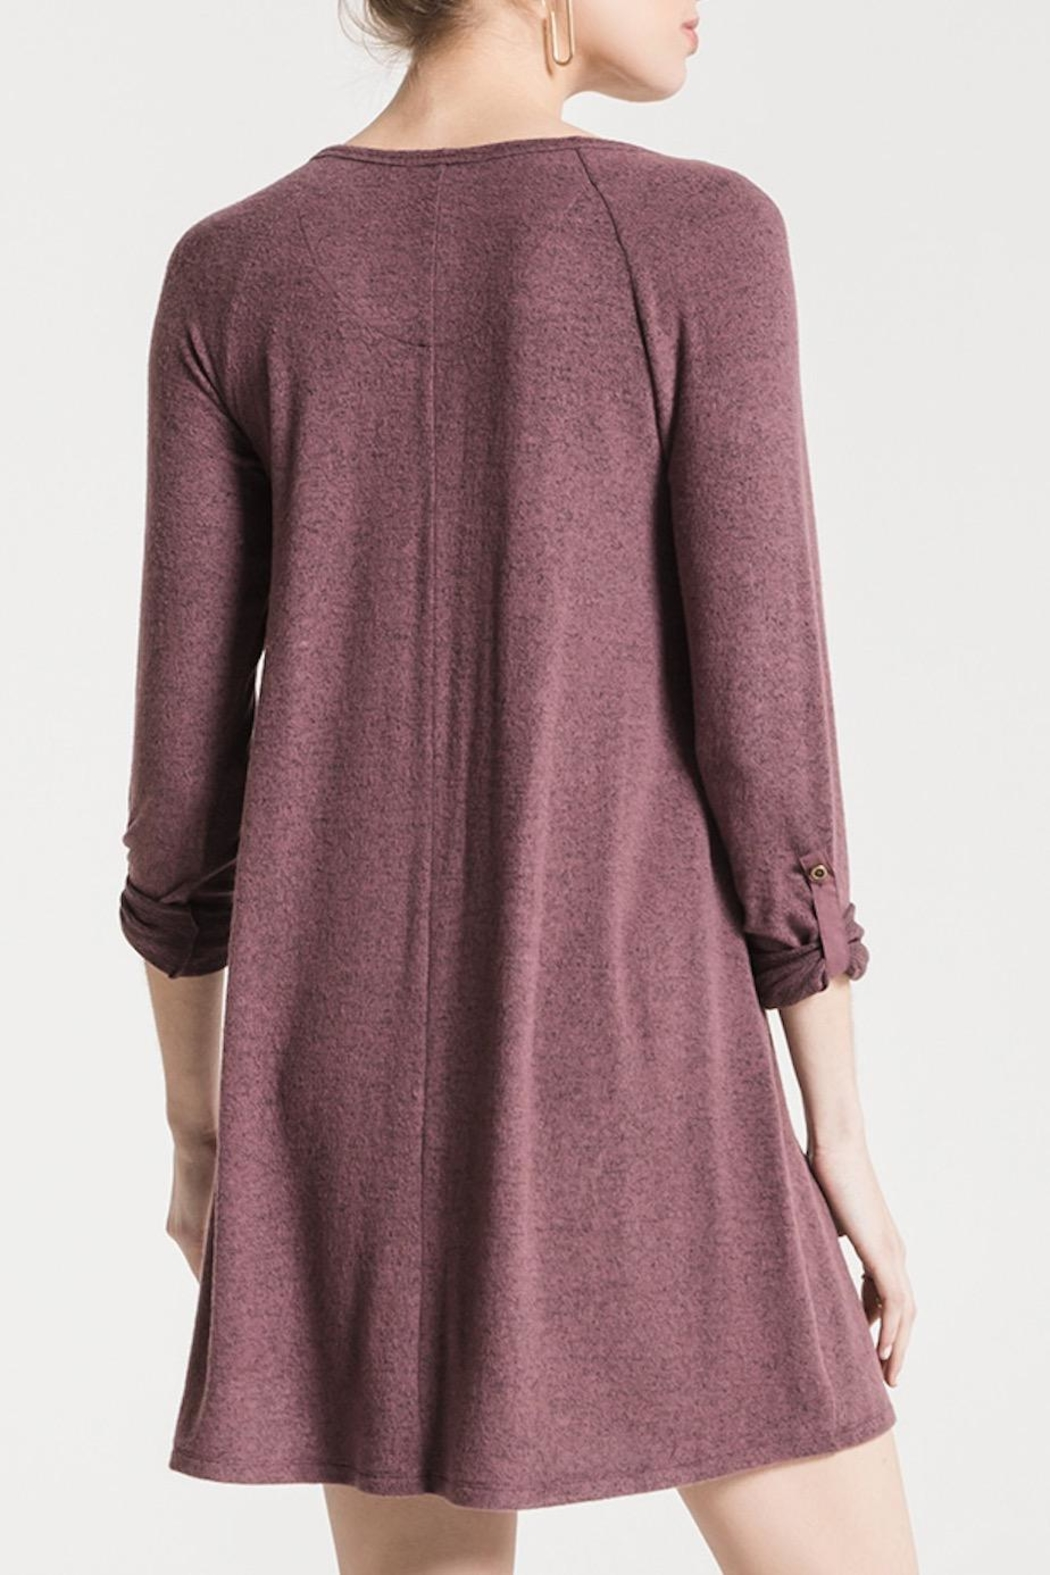 z supply Sweater Henley Dress - Front Full Image